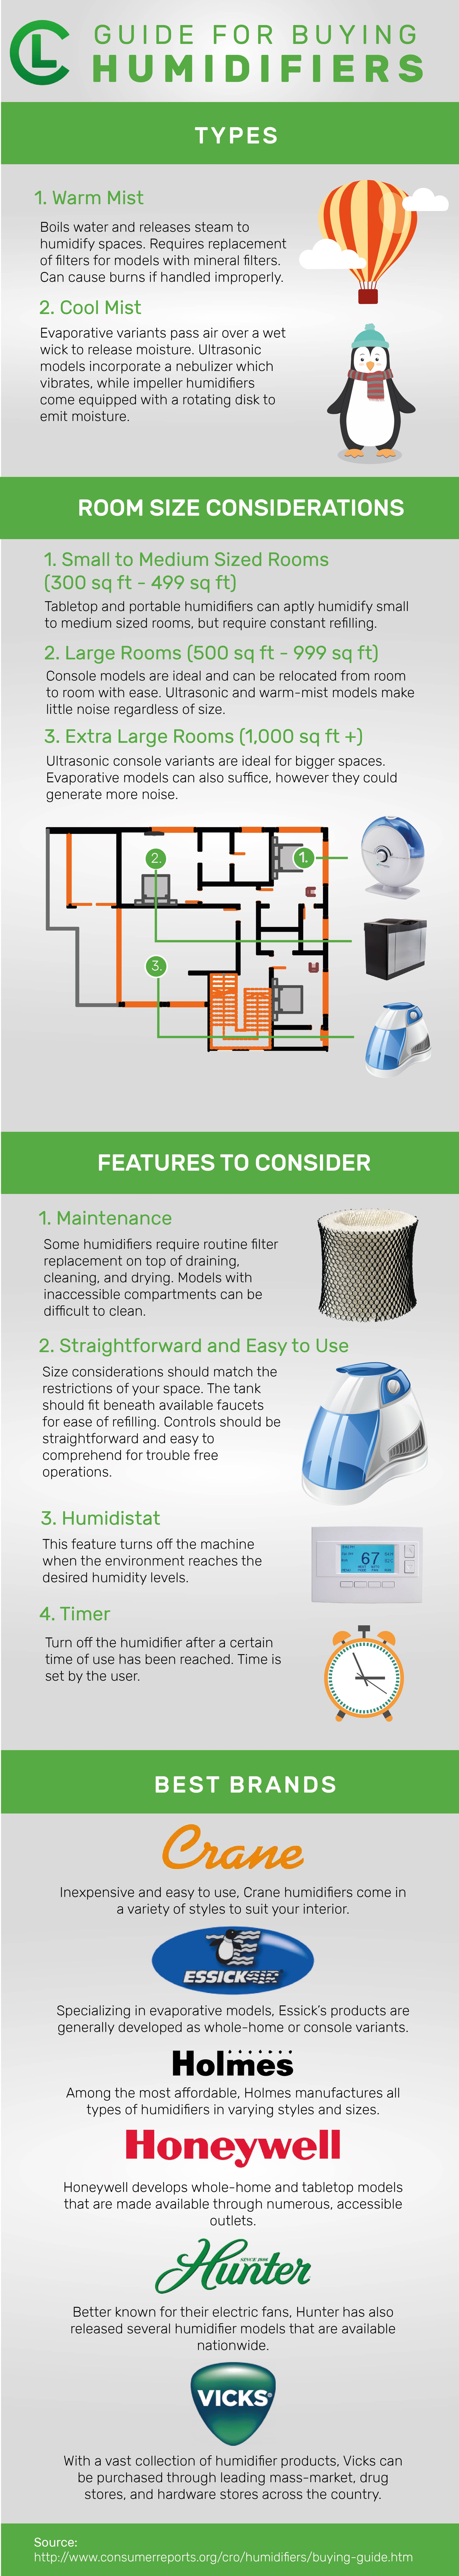 Guide For Buying Humidifiers Infographic